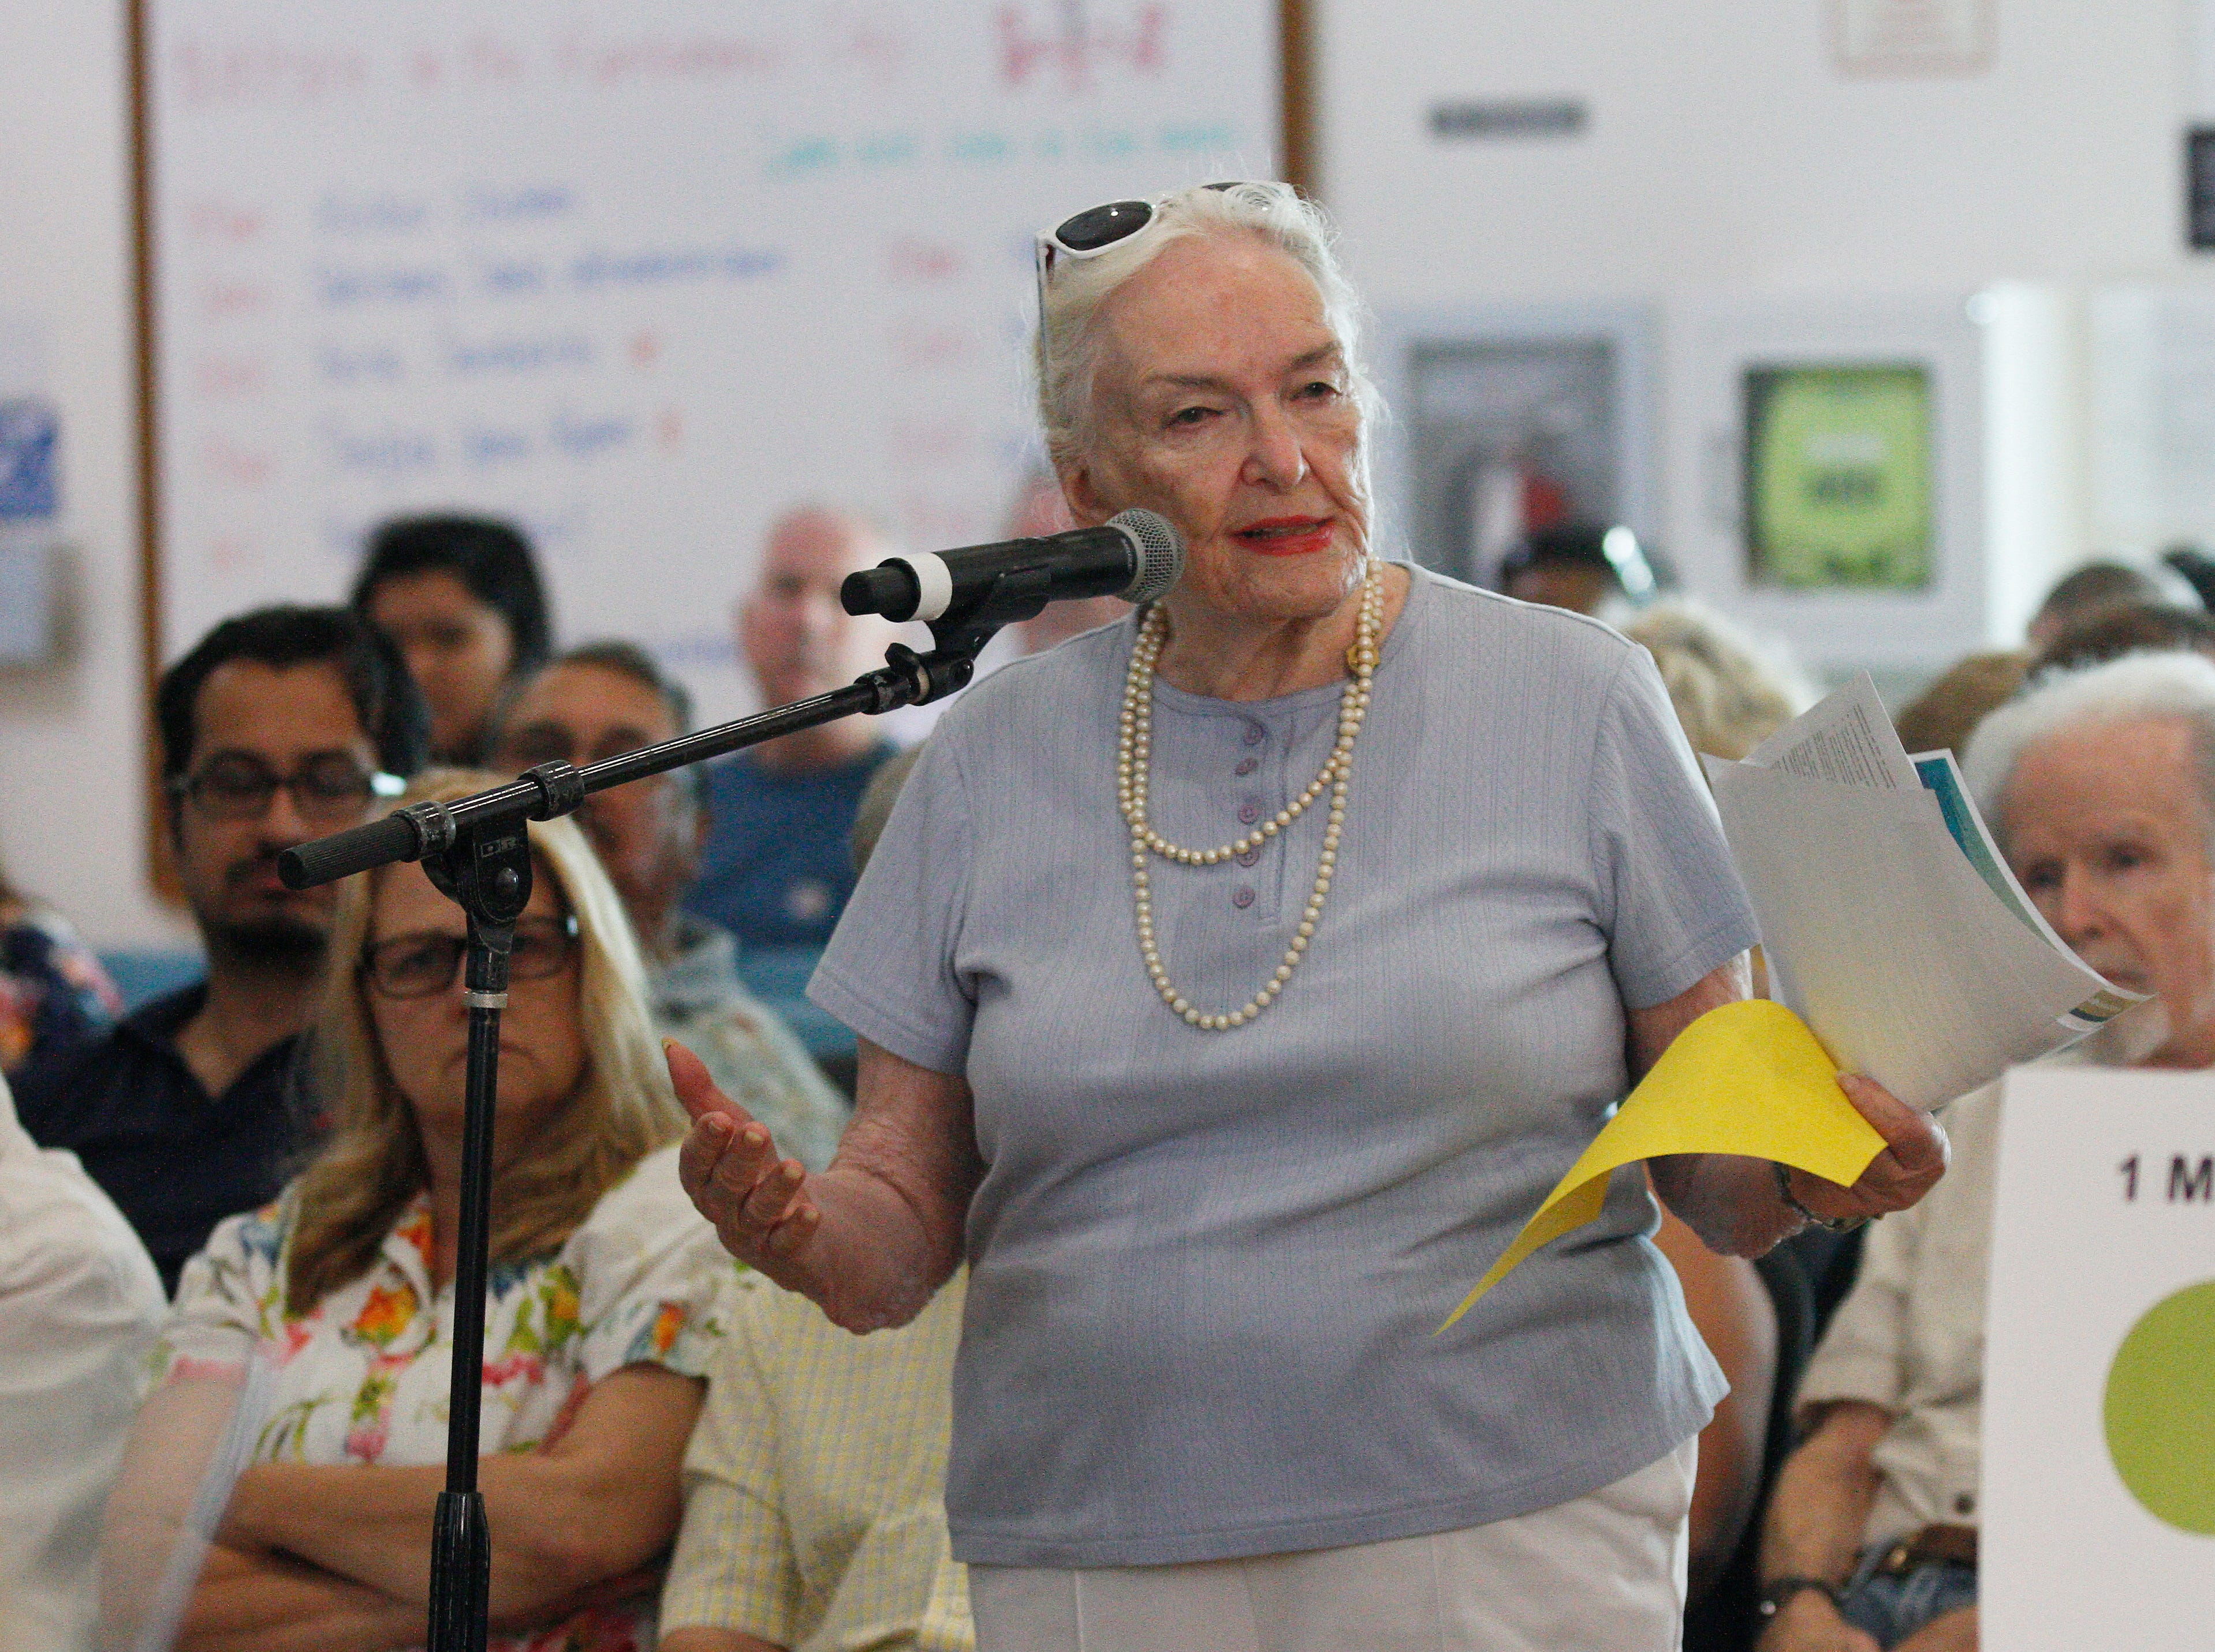 Arline Mathews blames the toxic environmental effects from the Santa Susana Field Lab site on her son's cancer while speaking during a public hearing at the Simi Valley Senior Center.